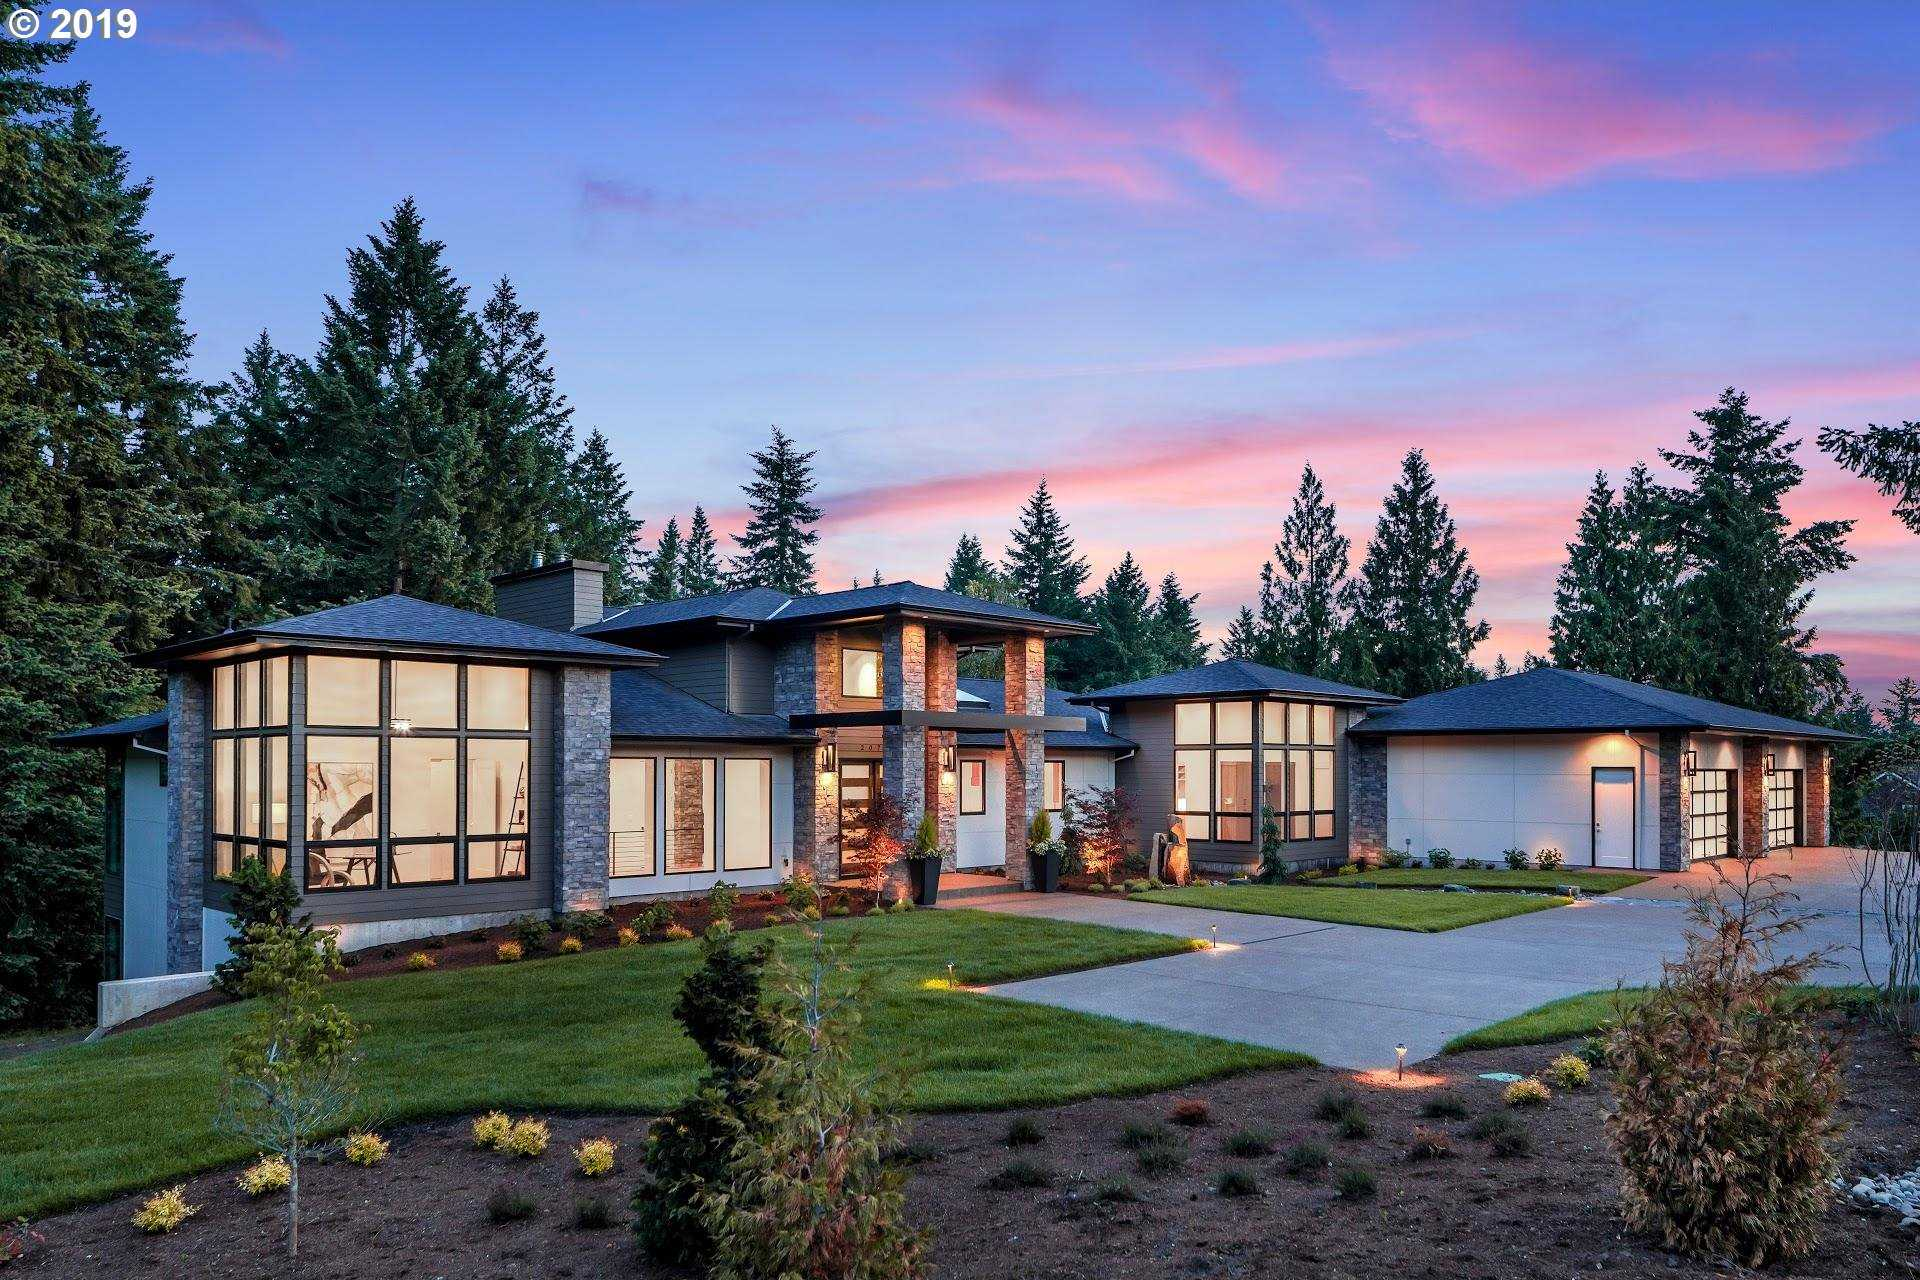 $2,950,000 - 5Br/6Ba -  for Sale in West Linn